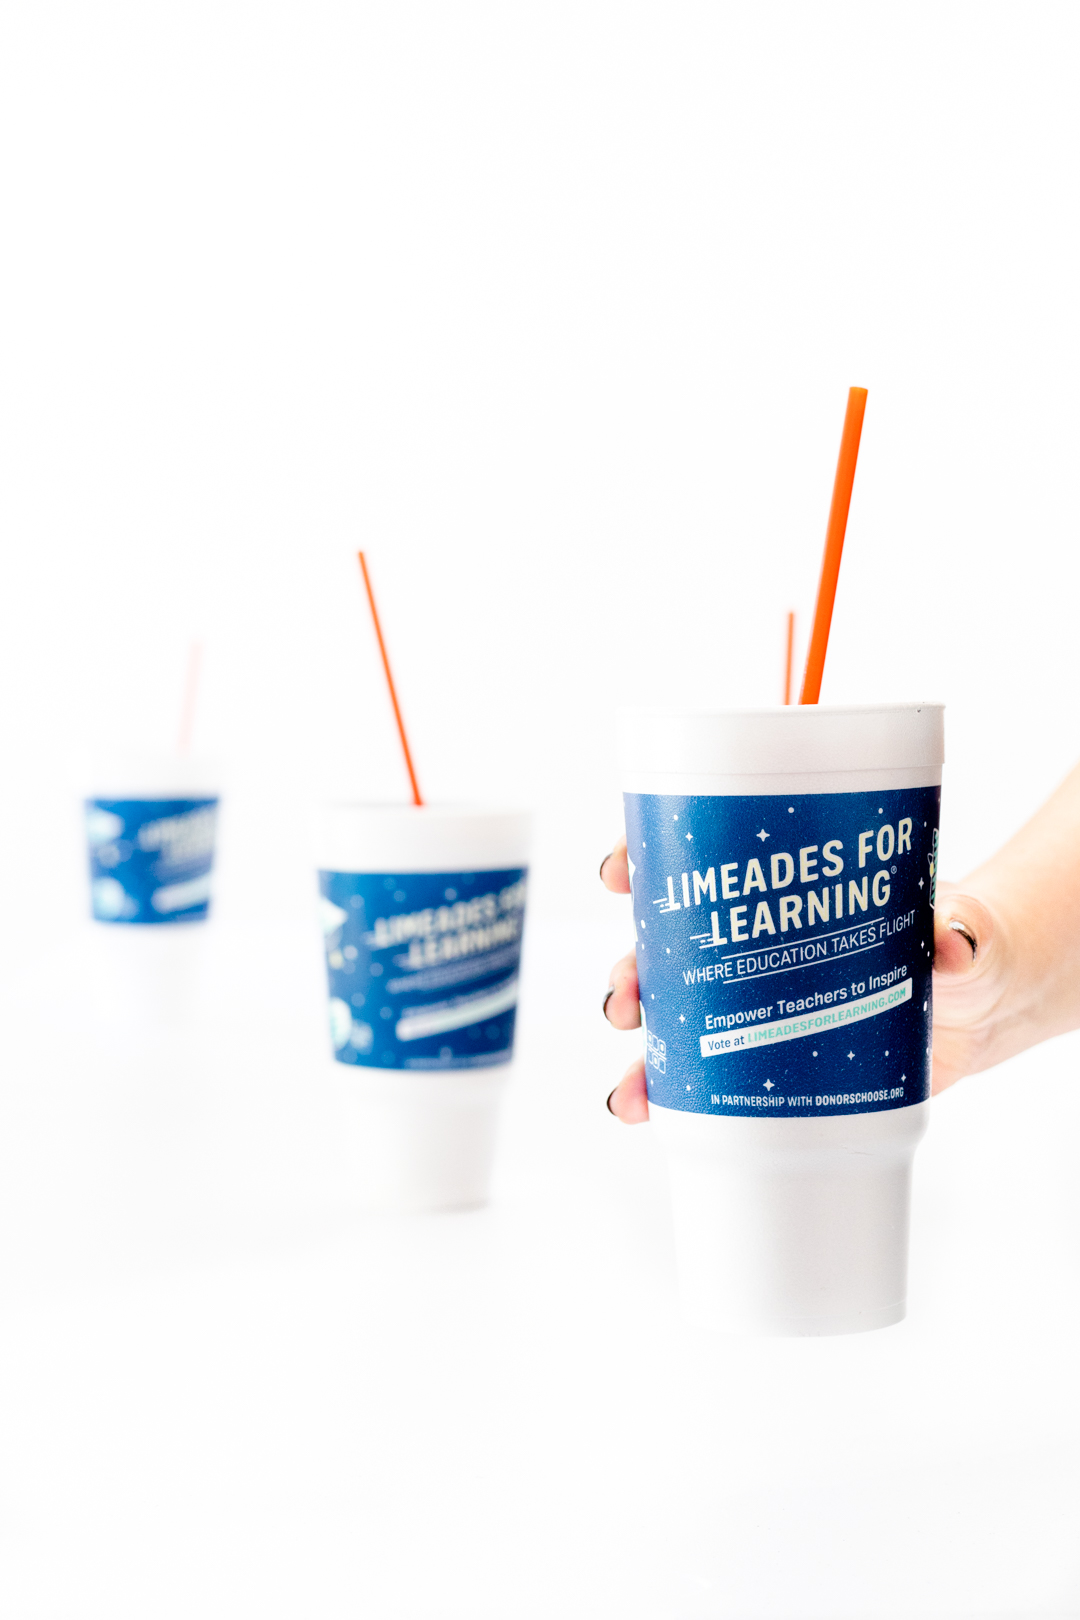 SONIC's Limeades for Learning